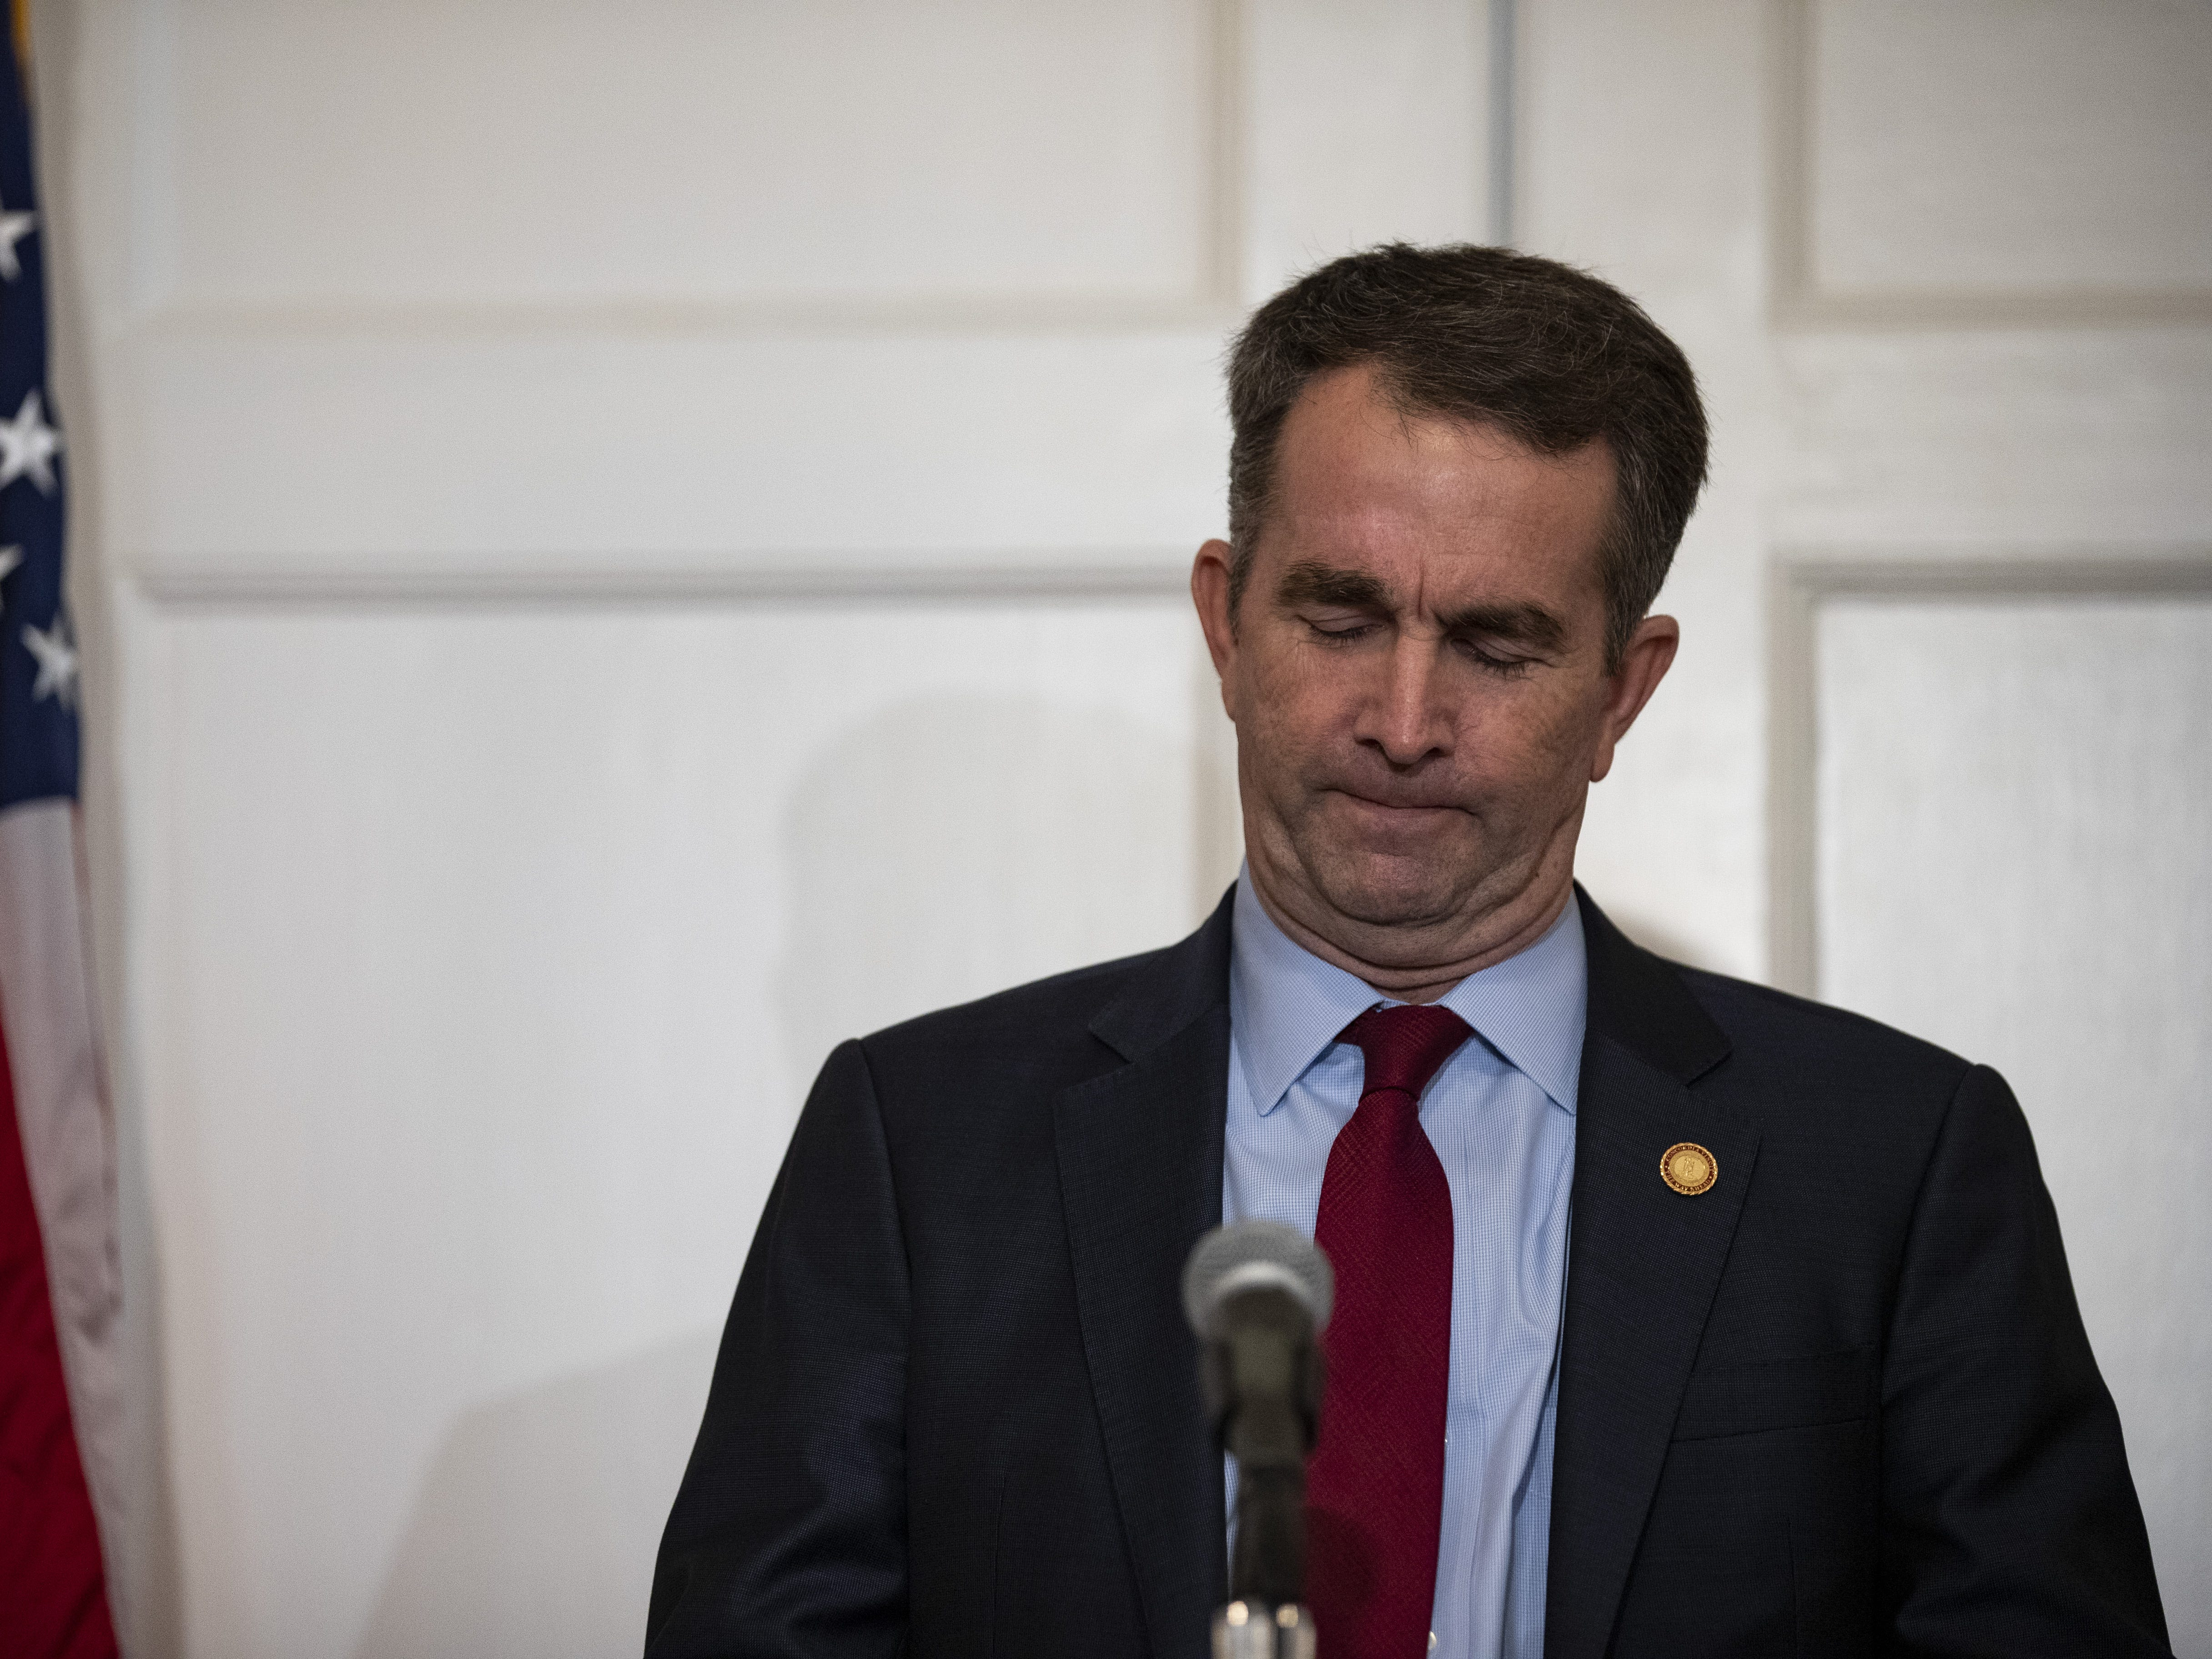 Virginia Governor Ralph Northam speaks with reporters at a press conference at the Governor's mansion on Feb. 2, 2019 in Richmond, Virginia. Northam denies allegations that he is pictured in a yearbook photo wearing racist attire.